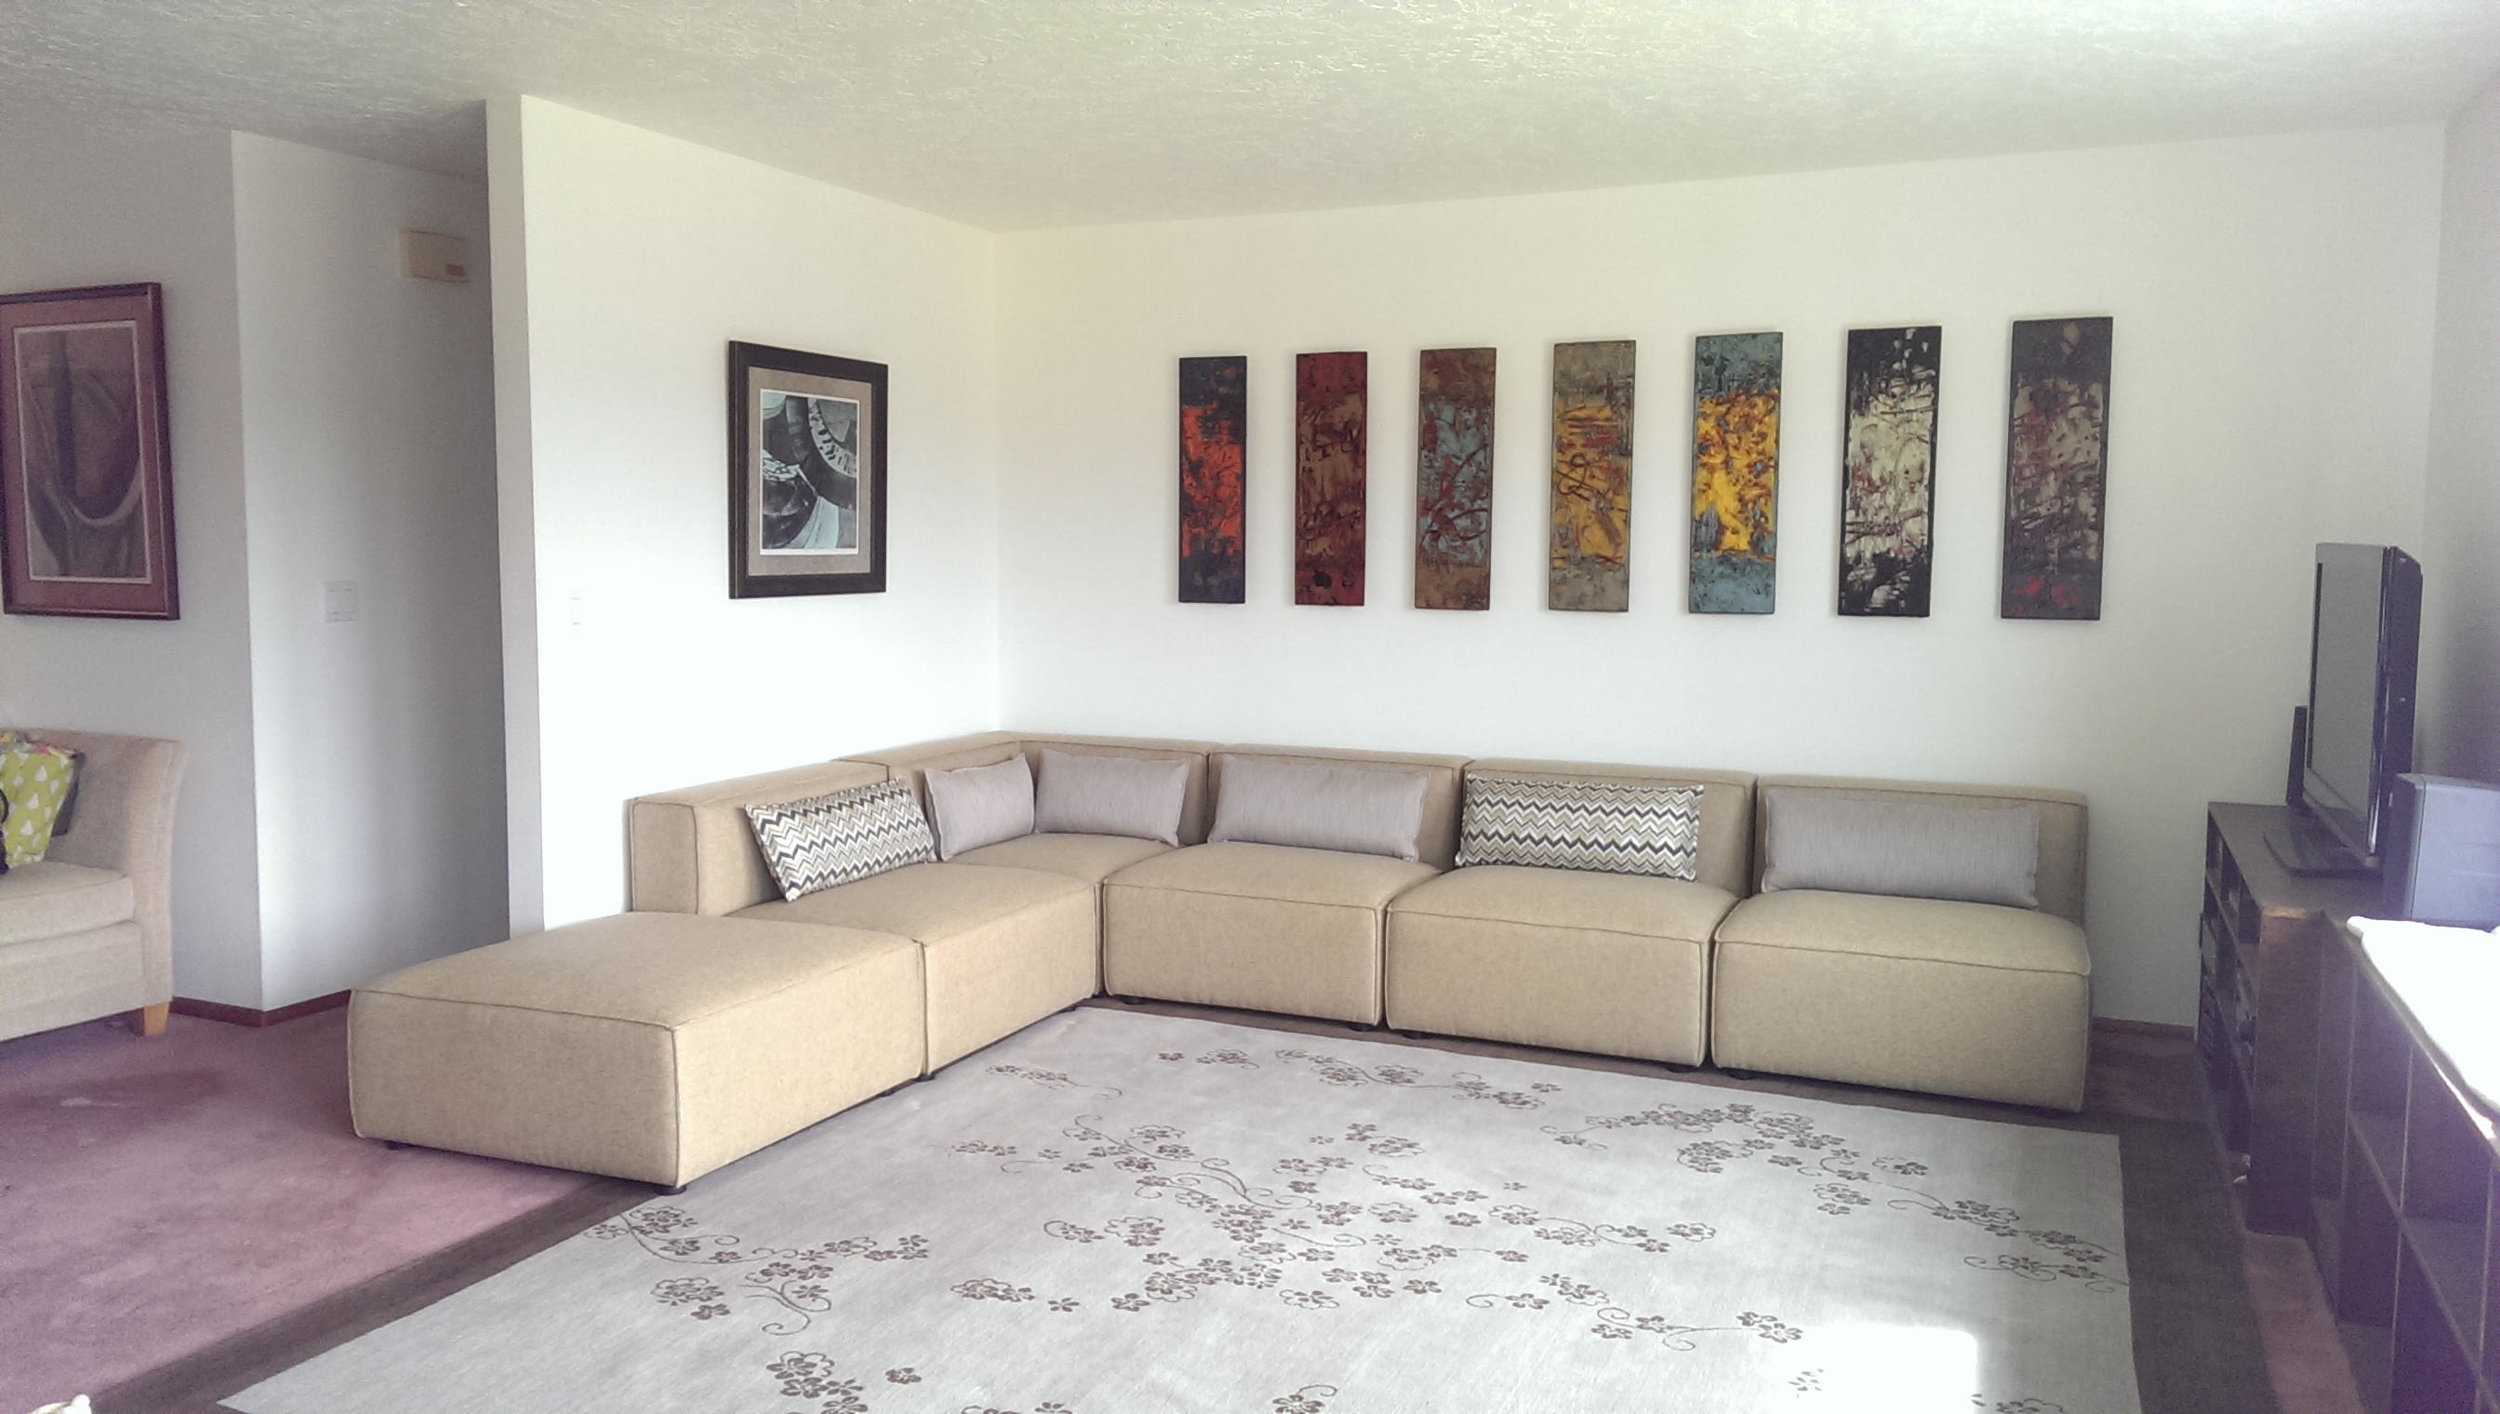 EWFmodern_SofaSectional_4002-4006_CustomerPhoto_SallyWilliams (1).JPG